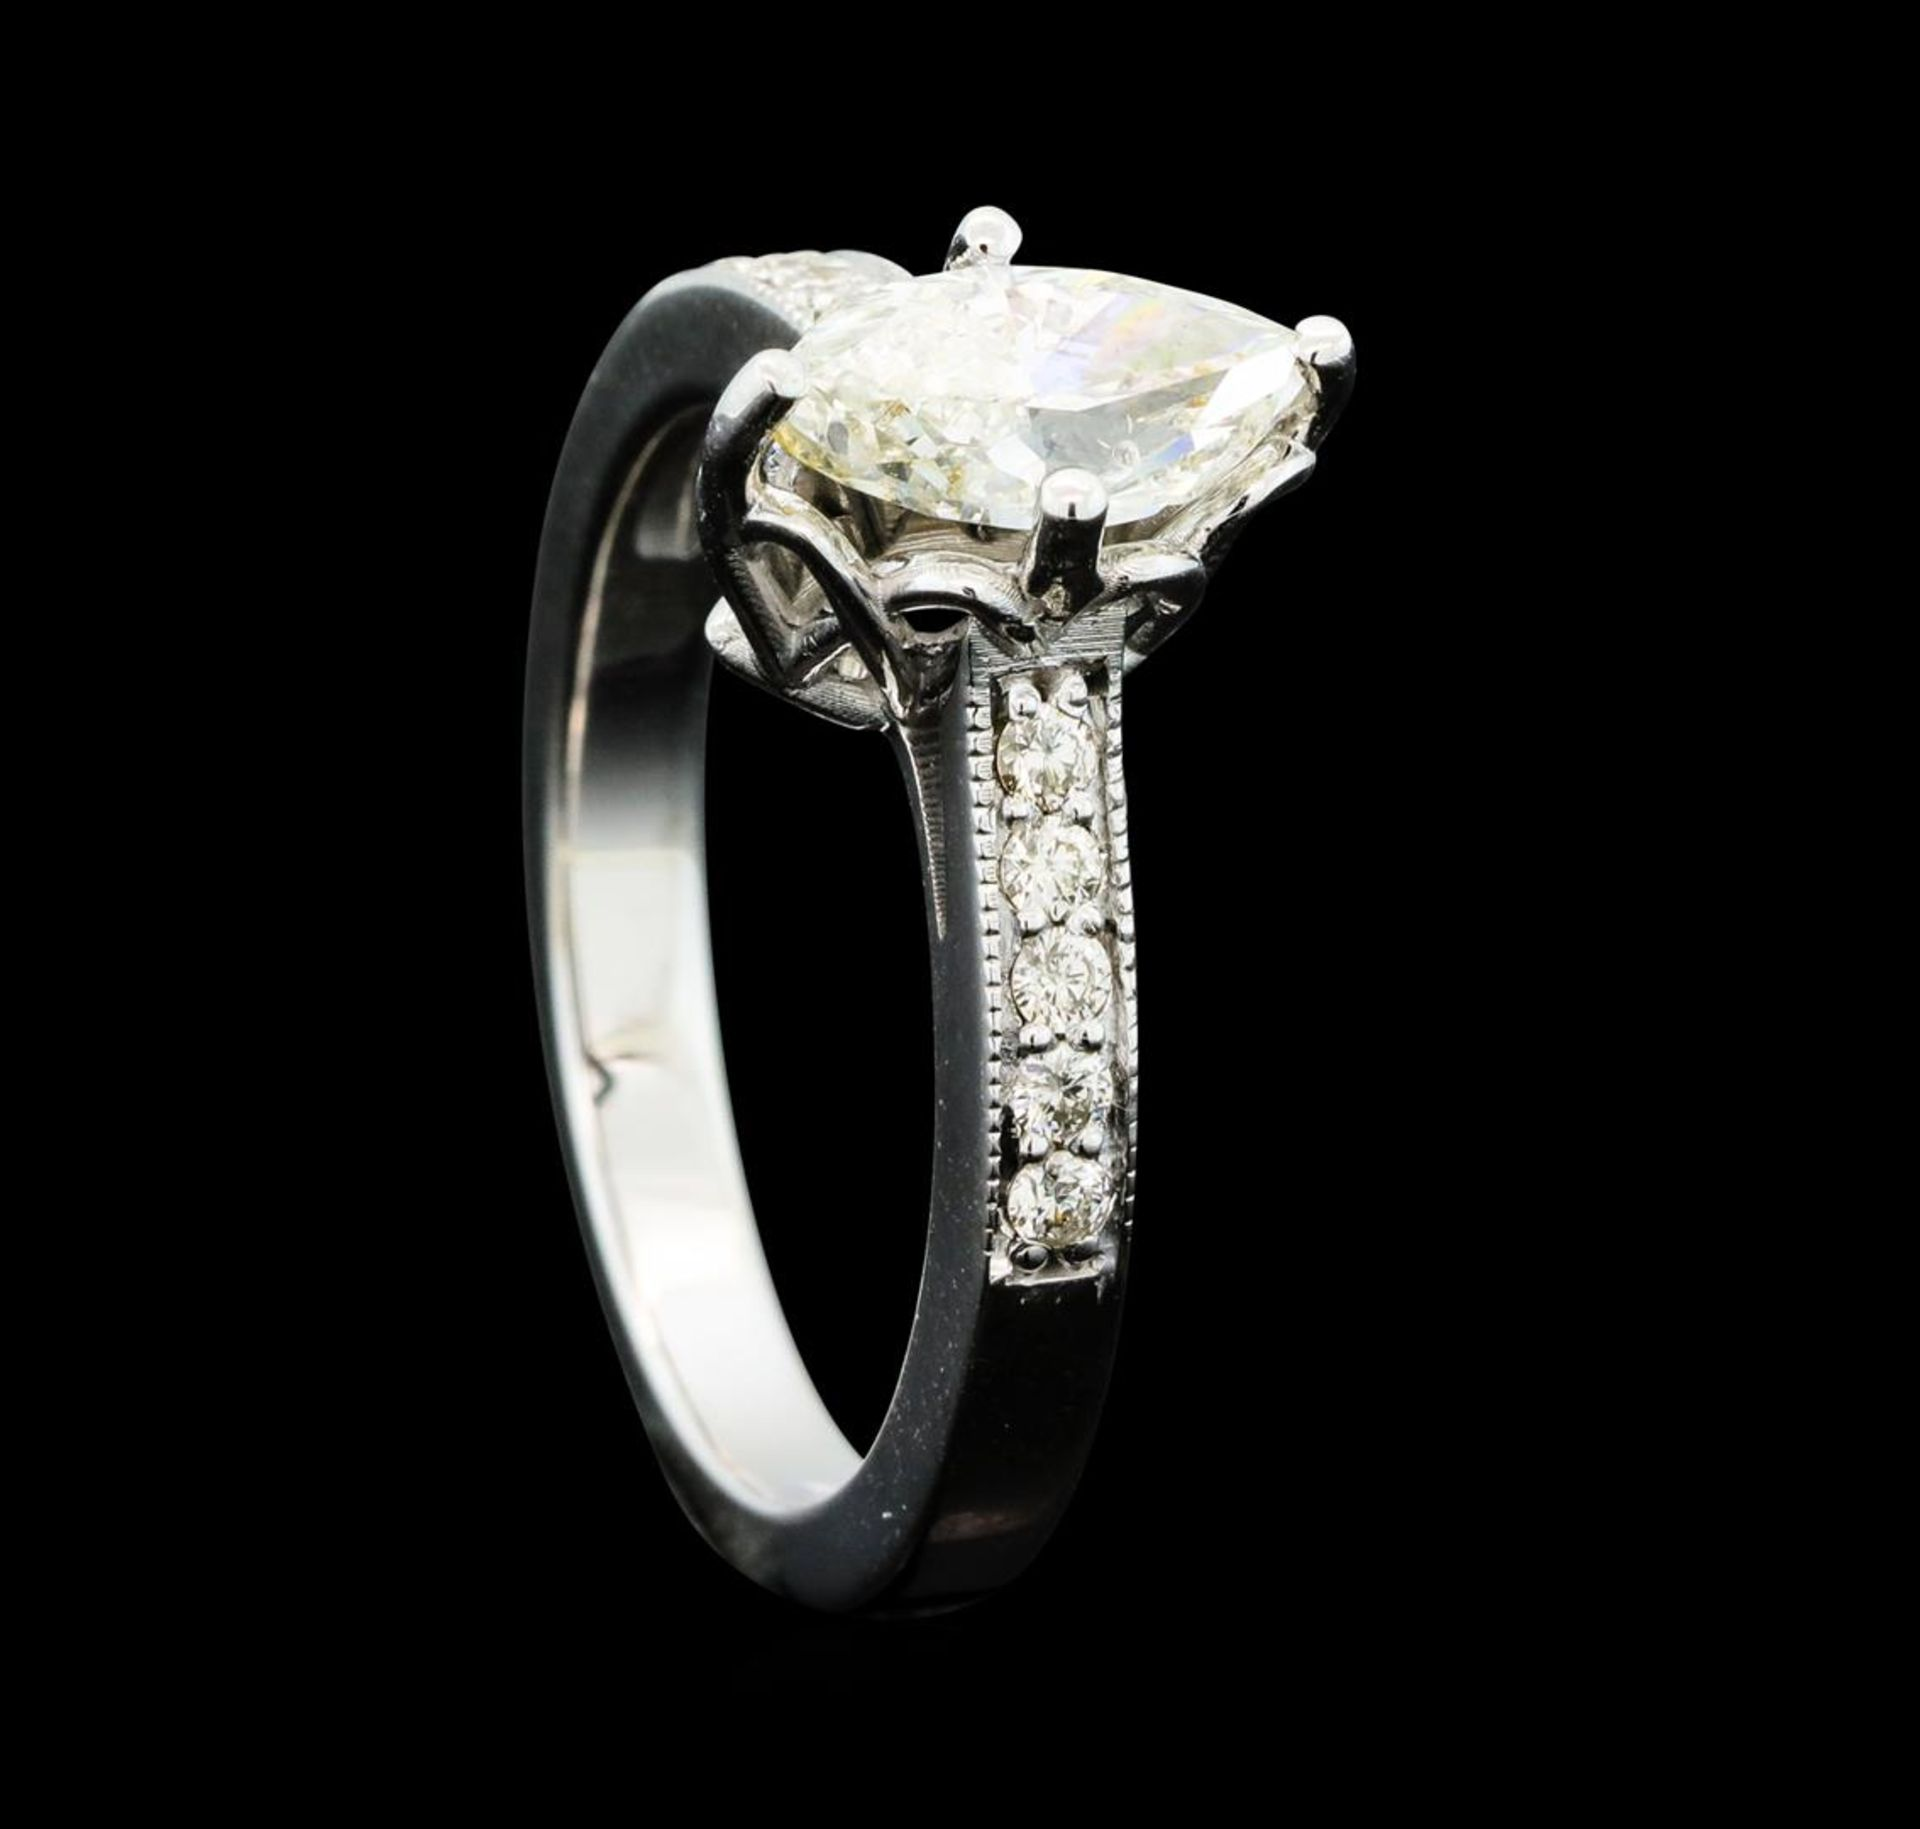 1.21 ctw Diamond Ring - 14KT White Gold - Image 4 of 5